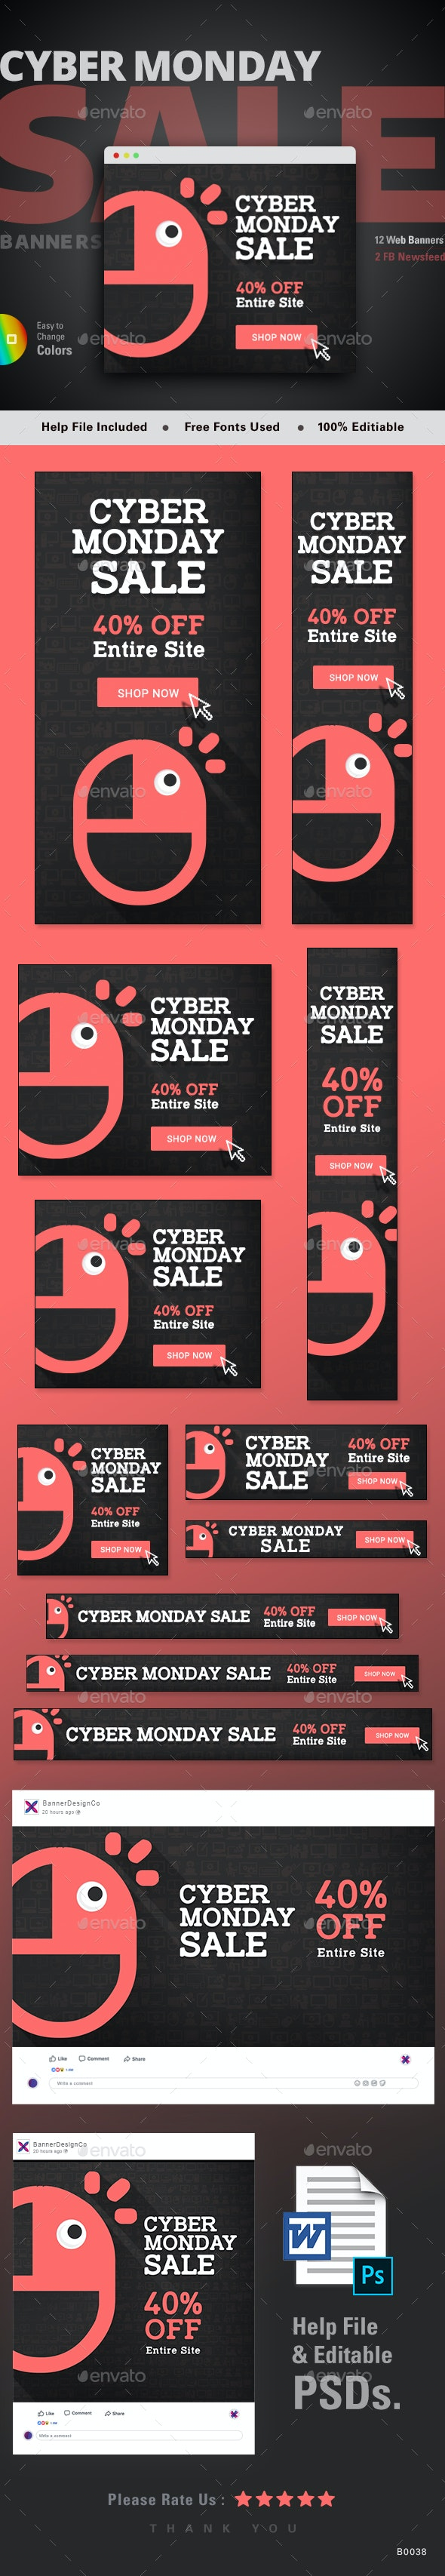 Cyber Monday Sale Web Banner Set - Banners & Ads Web Elements